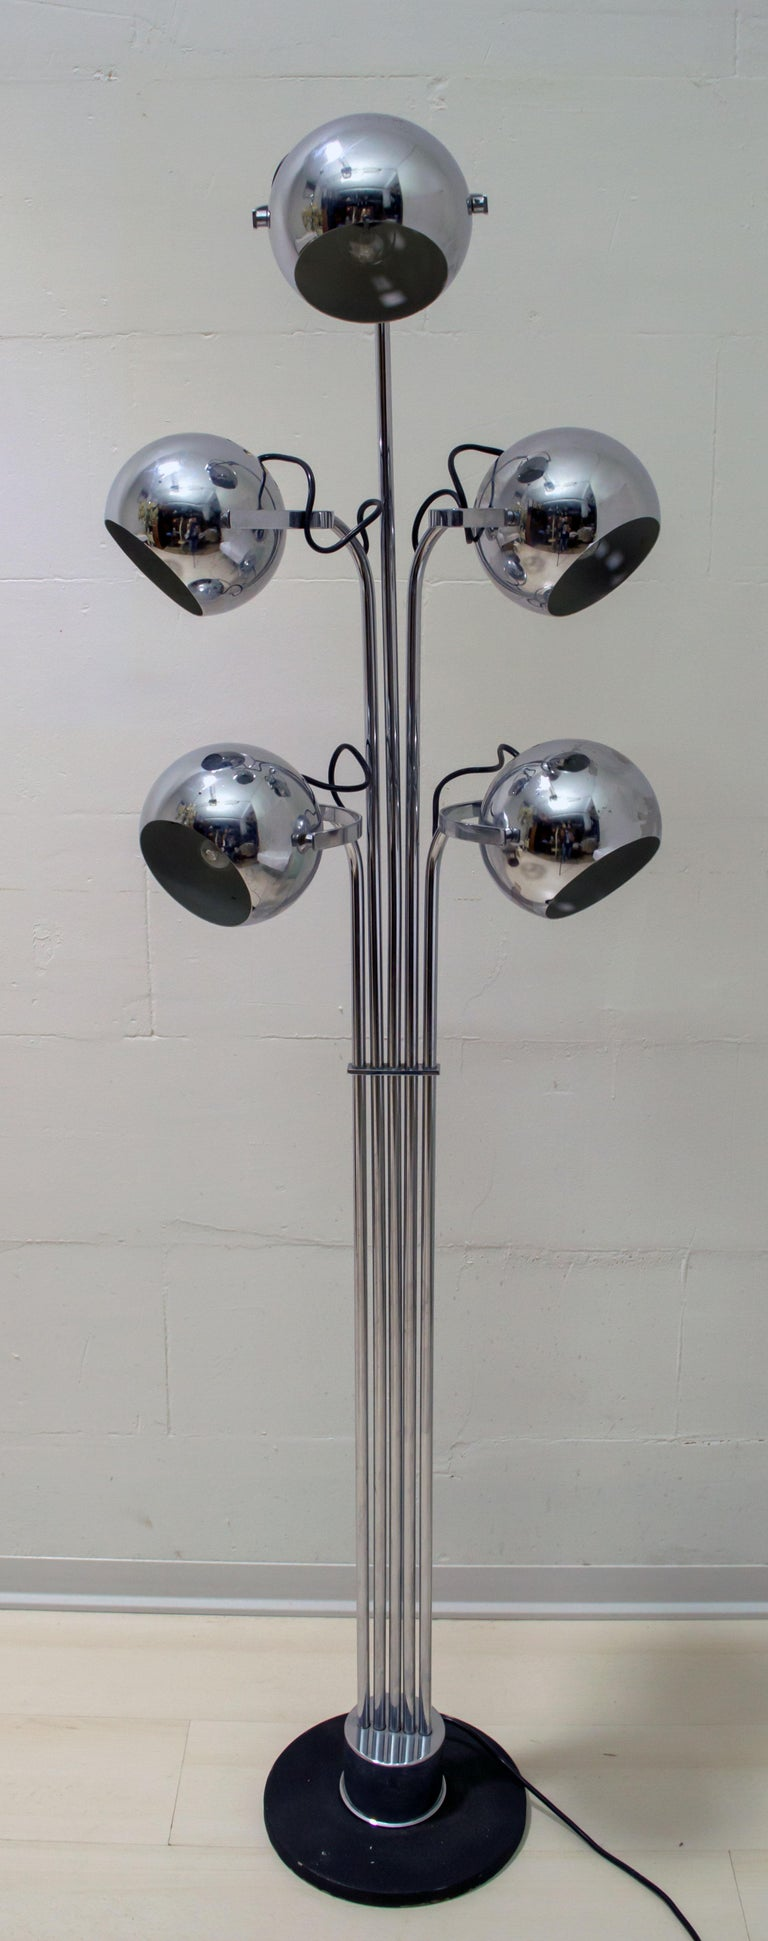 This floor lamp in chromed metal was designed by Goffredo Reggiani in the 1970s; presents five spherical reflectors.